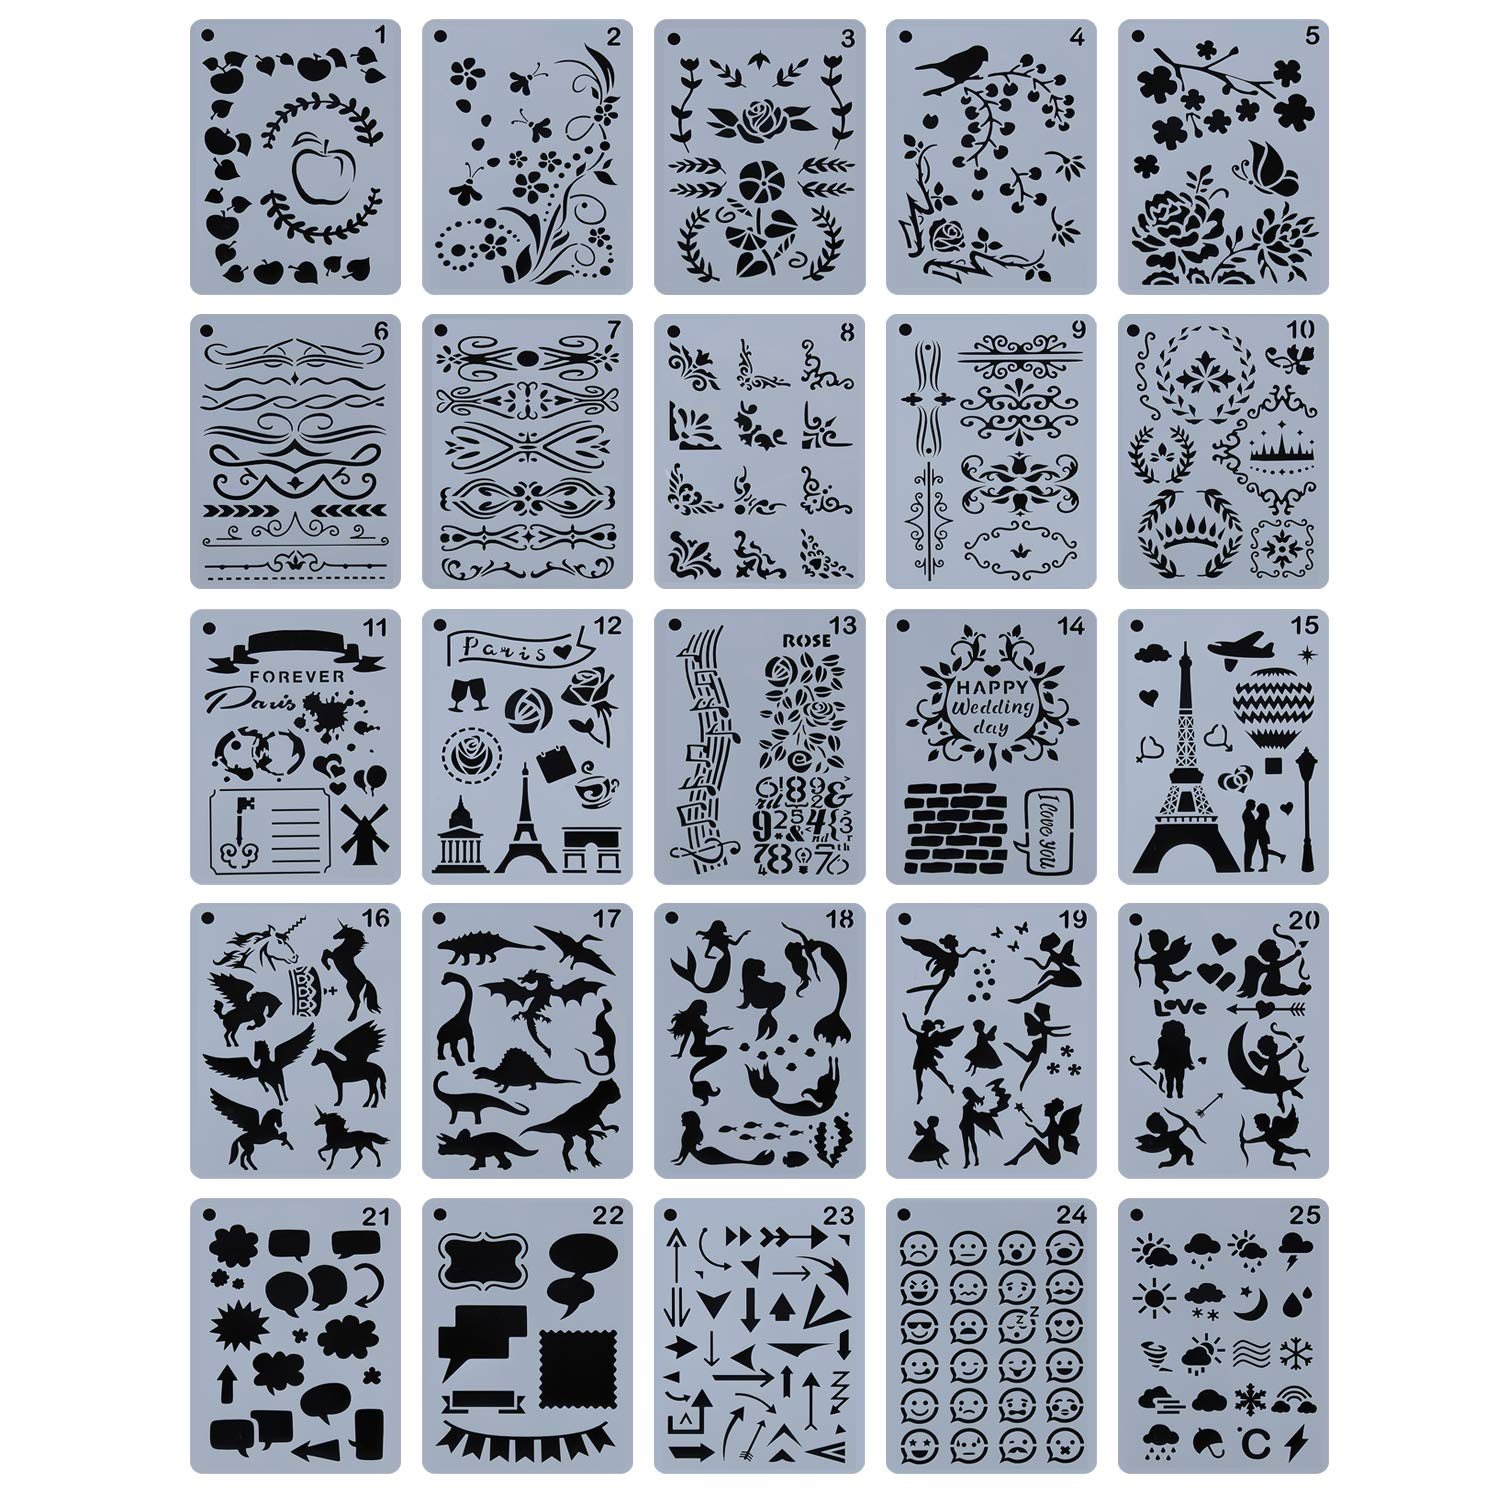 "YUEAON 25-Pack 5"" x 7"" Journal Stencils Drawing Floral Template Stencil Supplies for DIY Bullet Scrapbook Notebook Dairy Planner Craft"